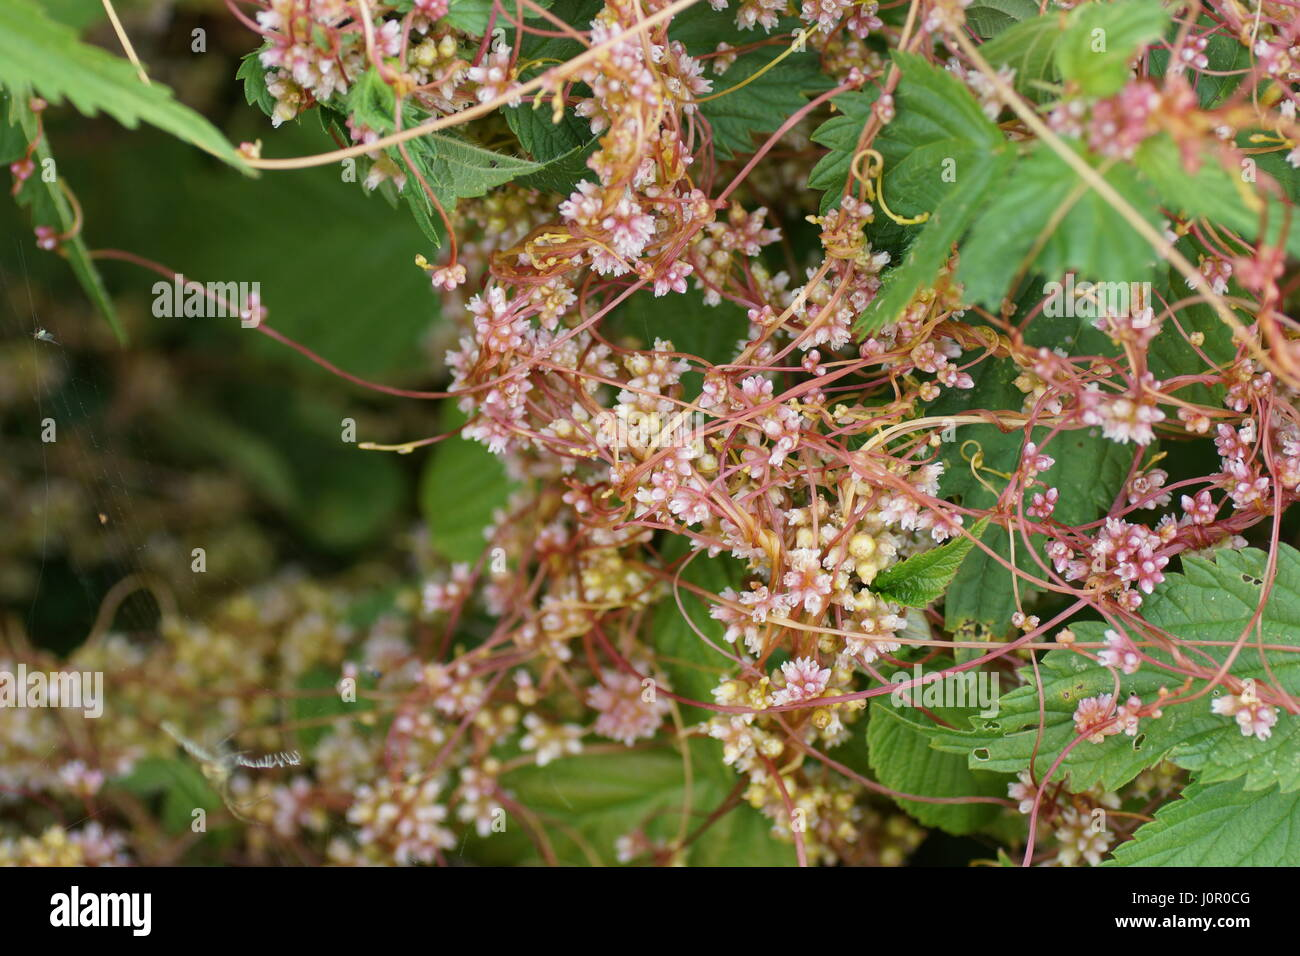 Cuscuta, dodder, parasitic plants - Stock Image